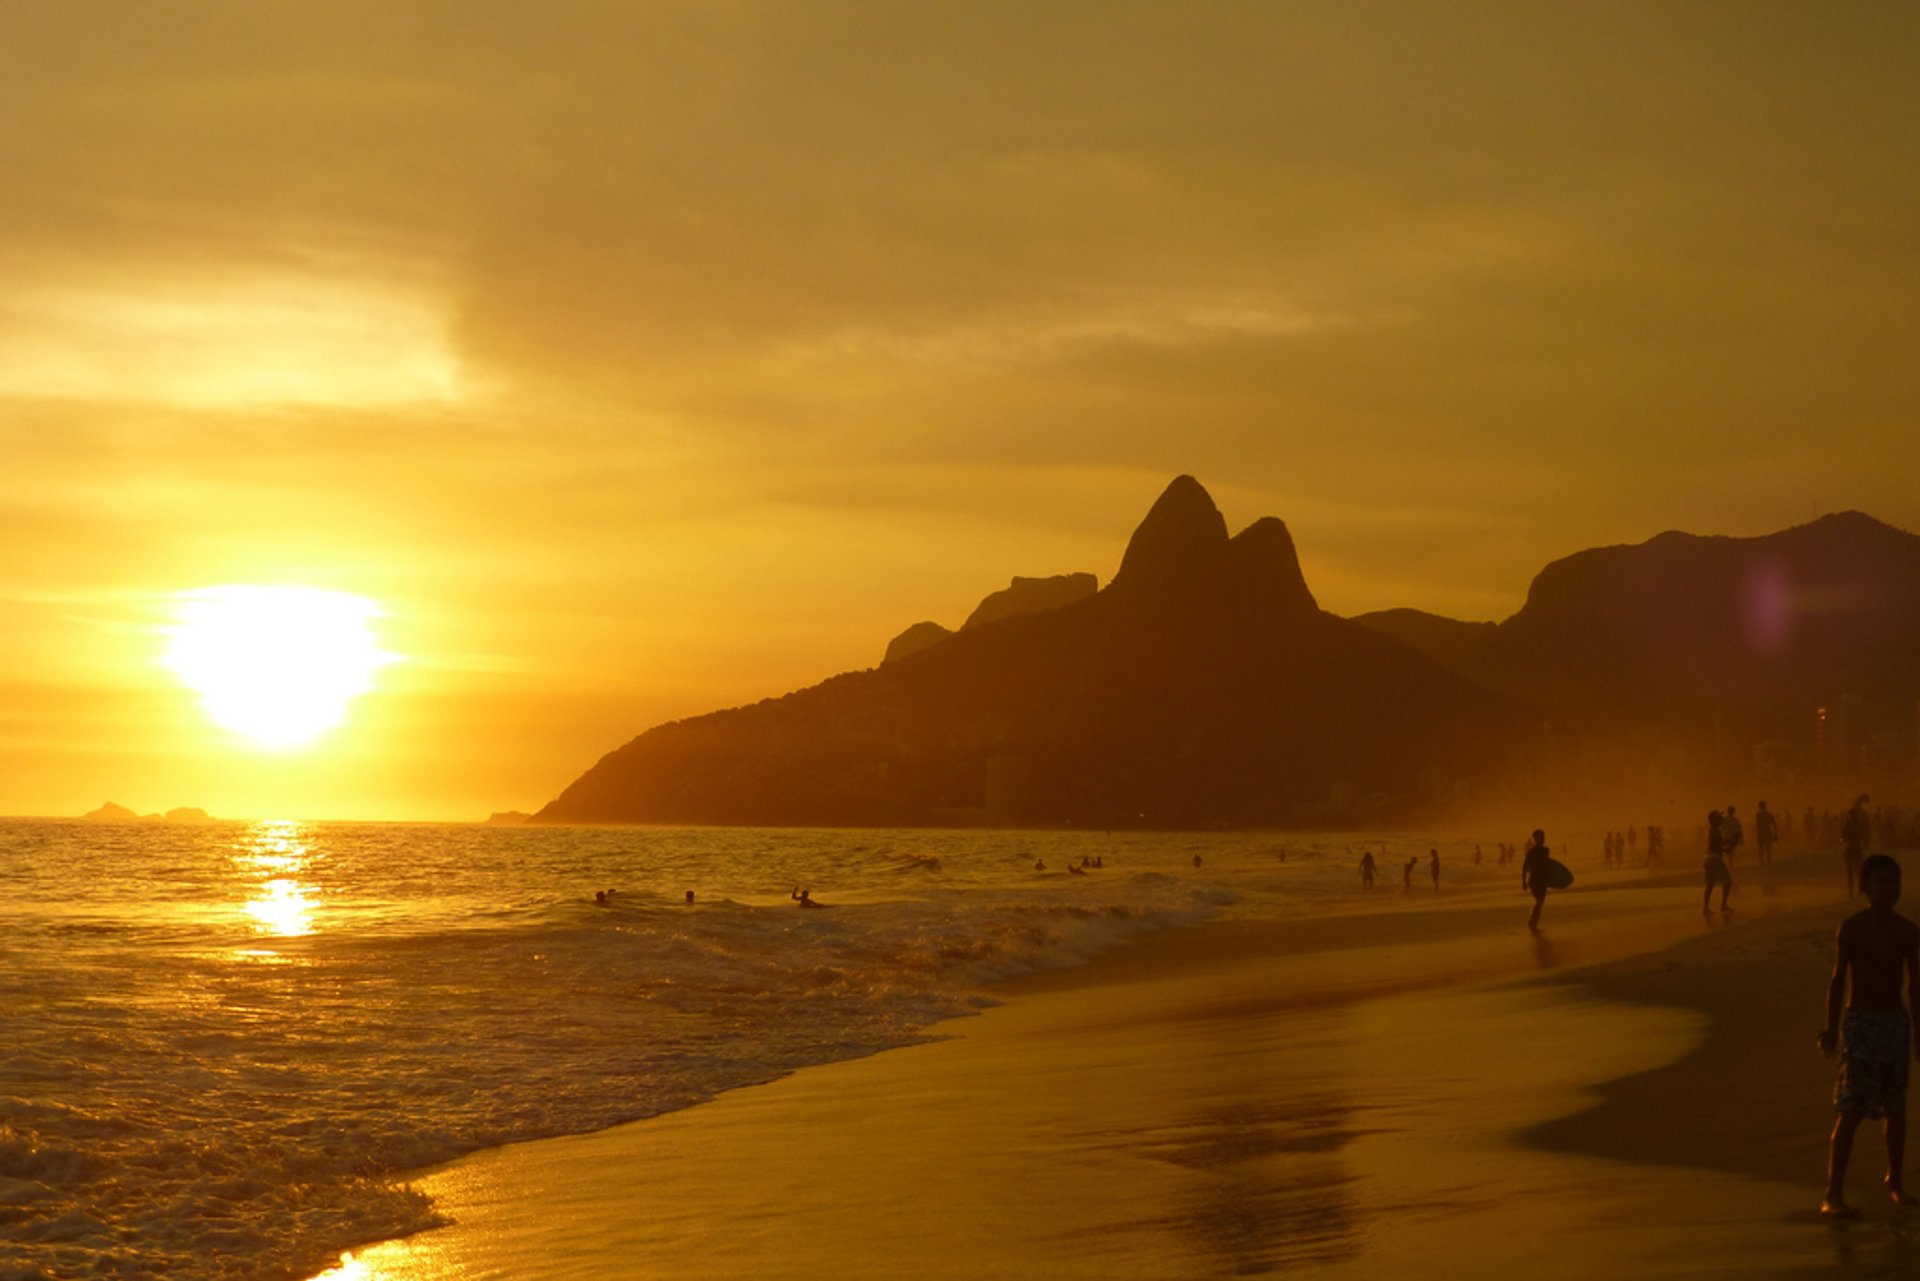 Watching the Sunset in Rio de Janeiro 2020 - Best Time